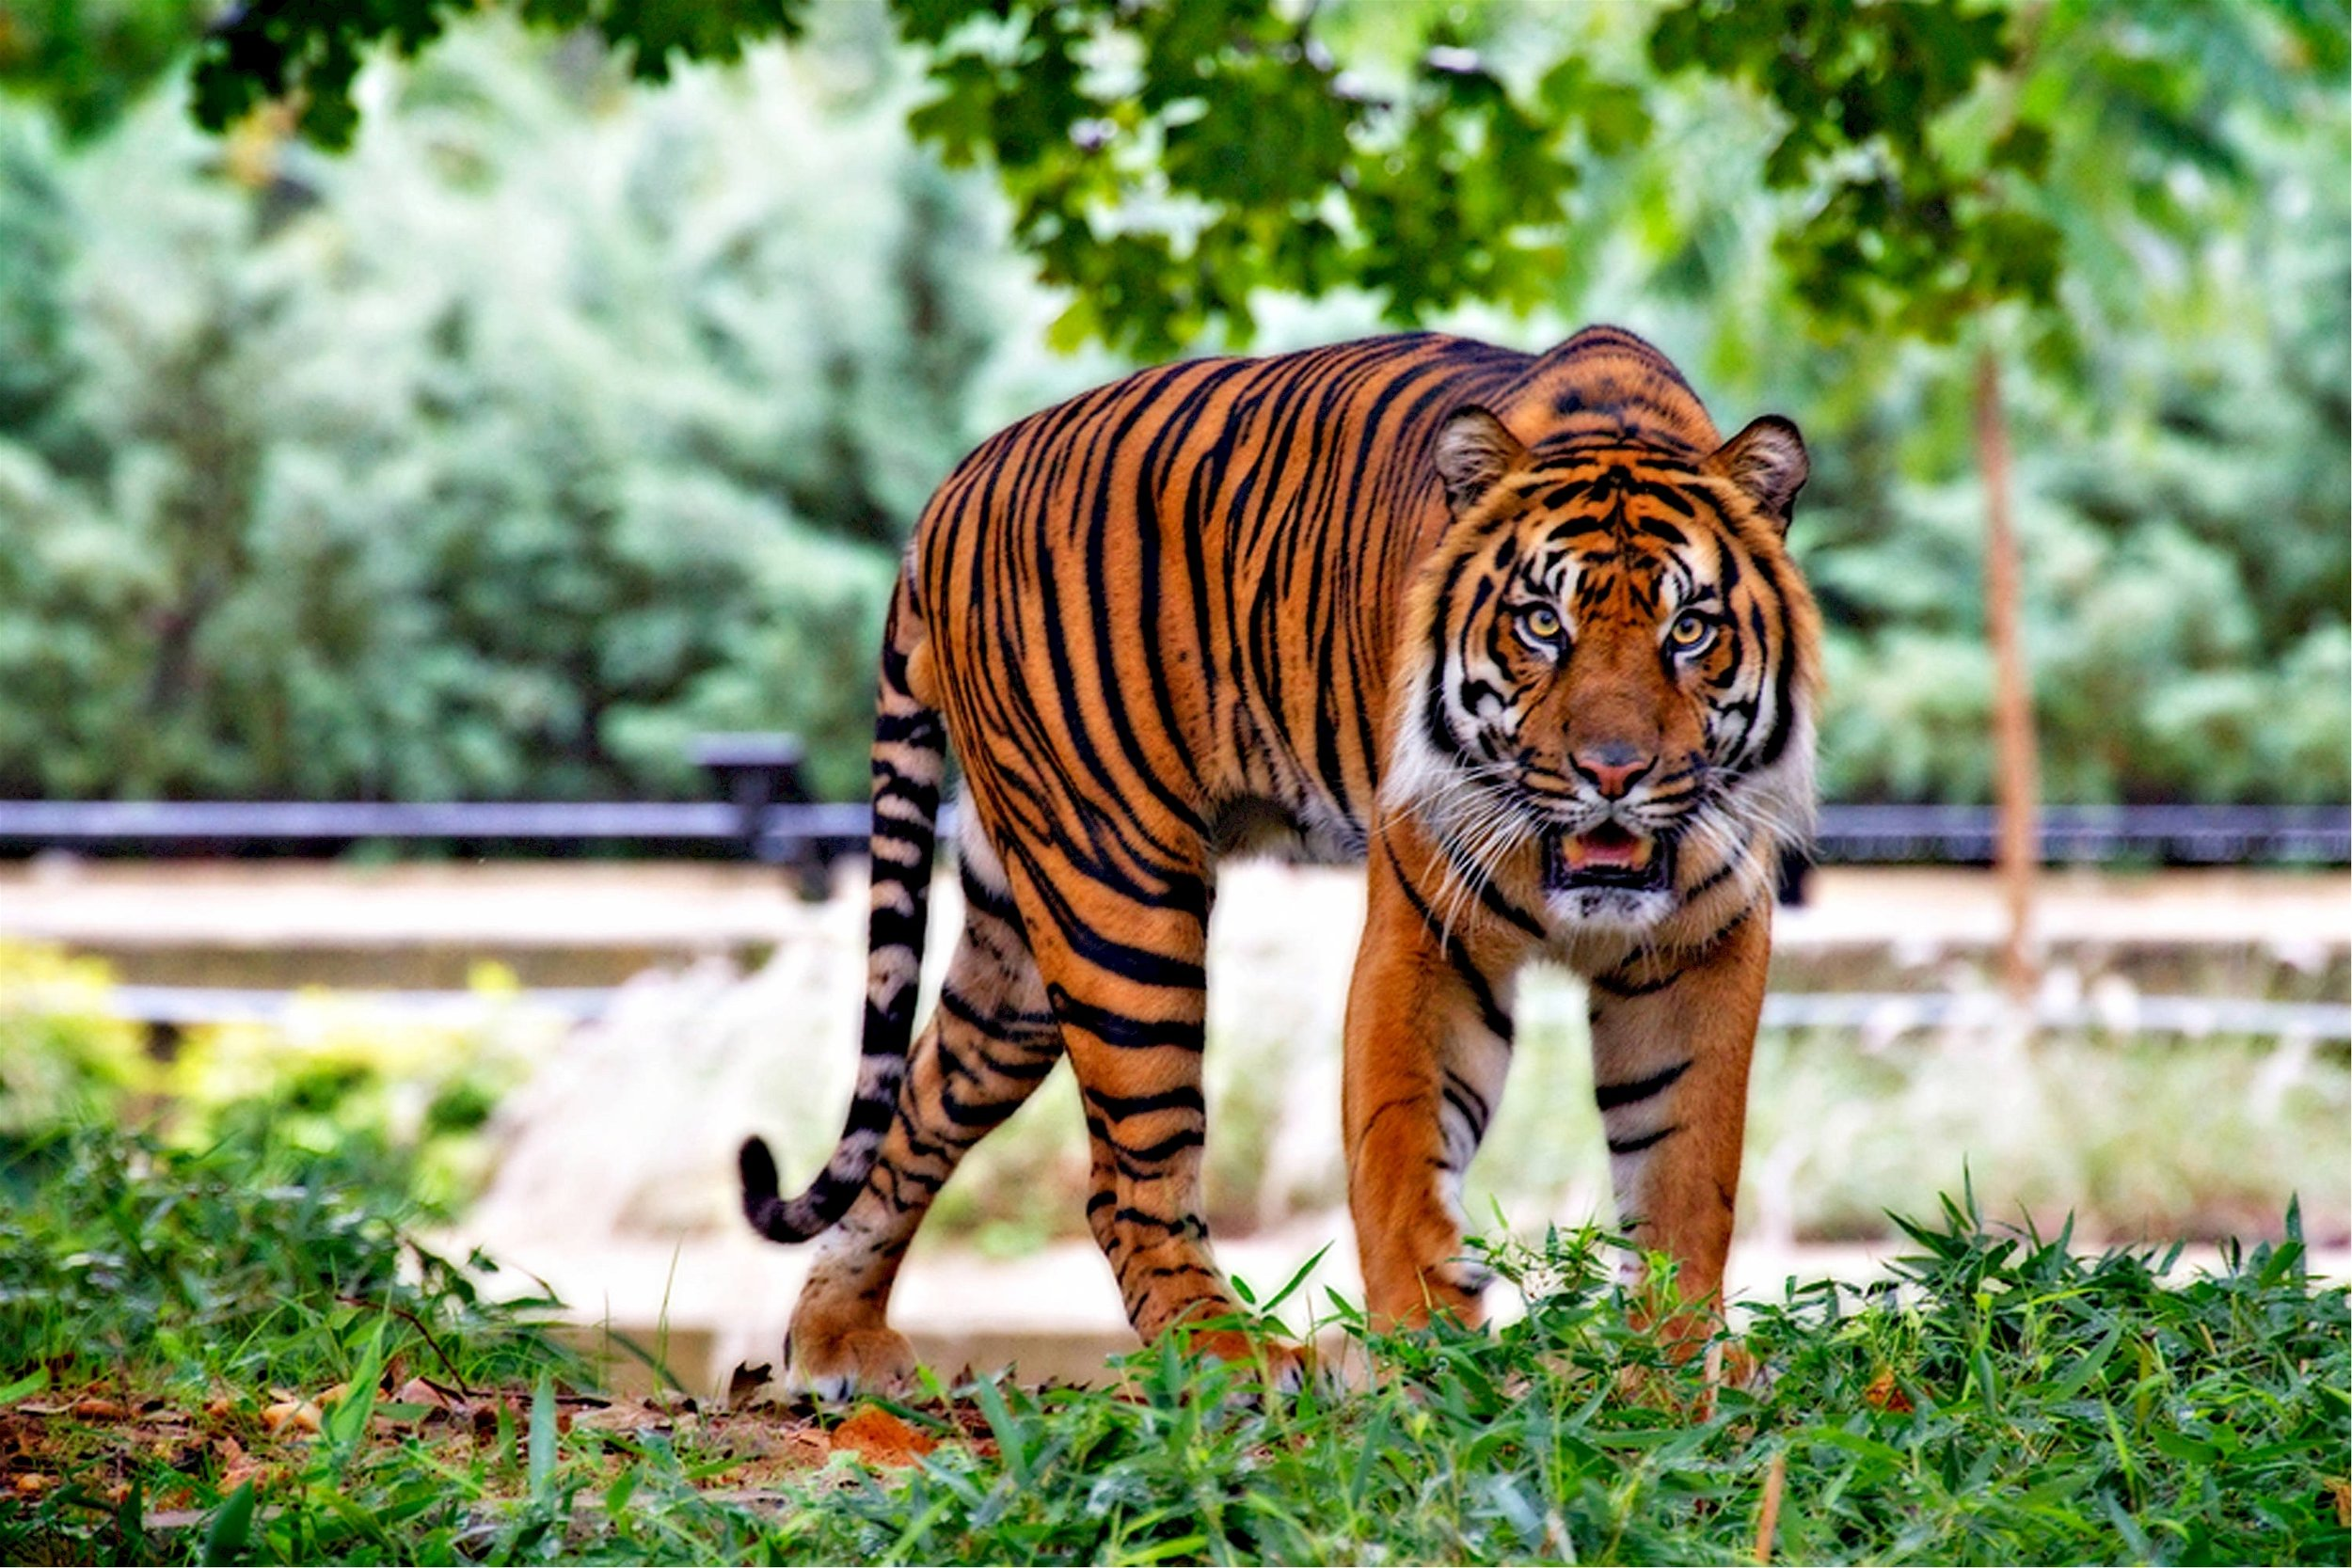 sumatran-tiger-tiger-big-cat-stripes-46251.jpeg